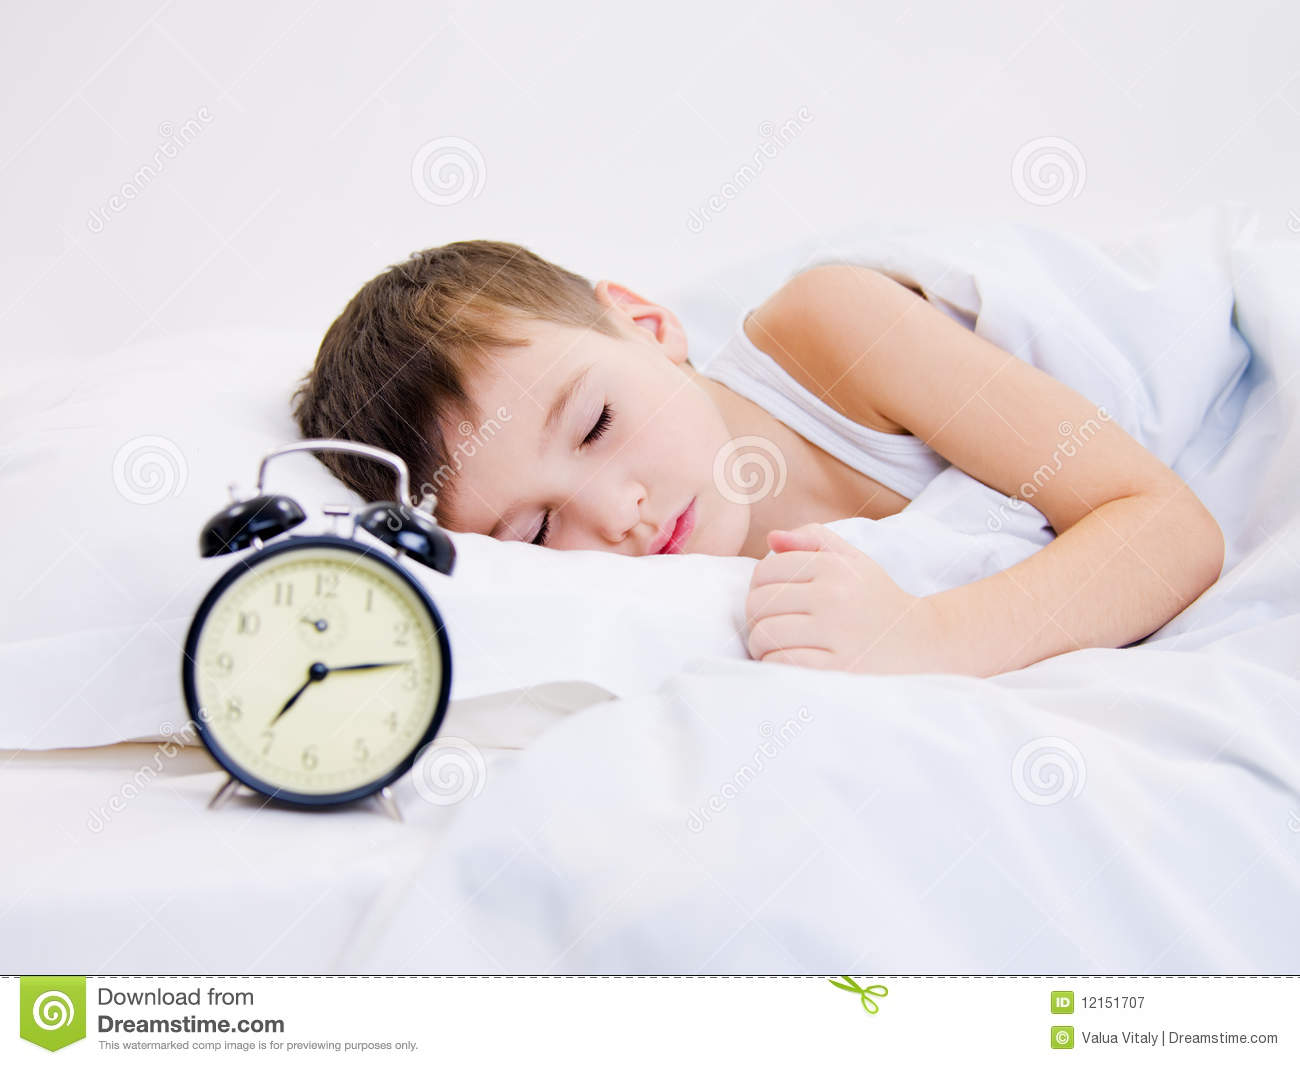 little kid sleeping with clock near his head royalty free stock photography image 12151707. Black Bedroom Furniture Sets. Home Design Ideas